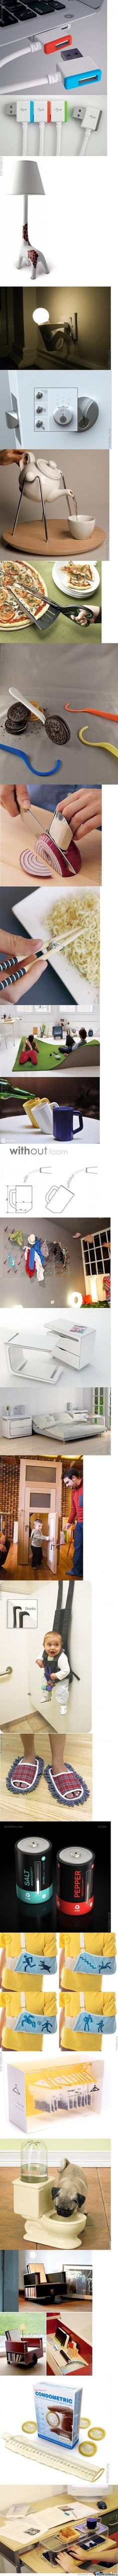 Drain stopper   50 cool and creative products by fred & friends ...